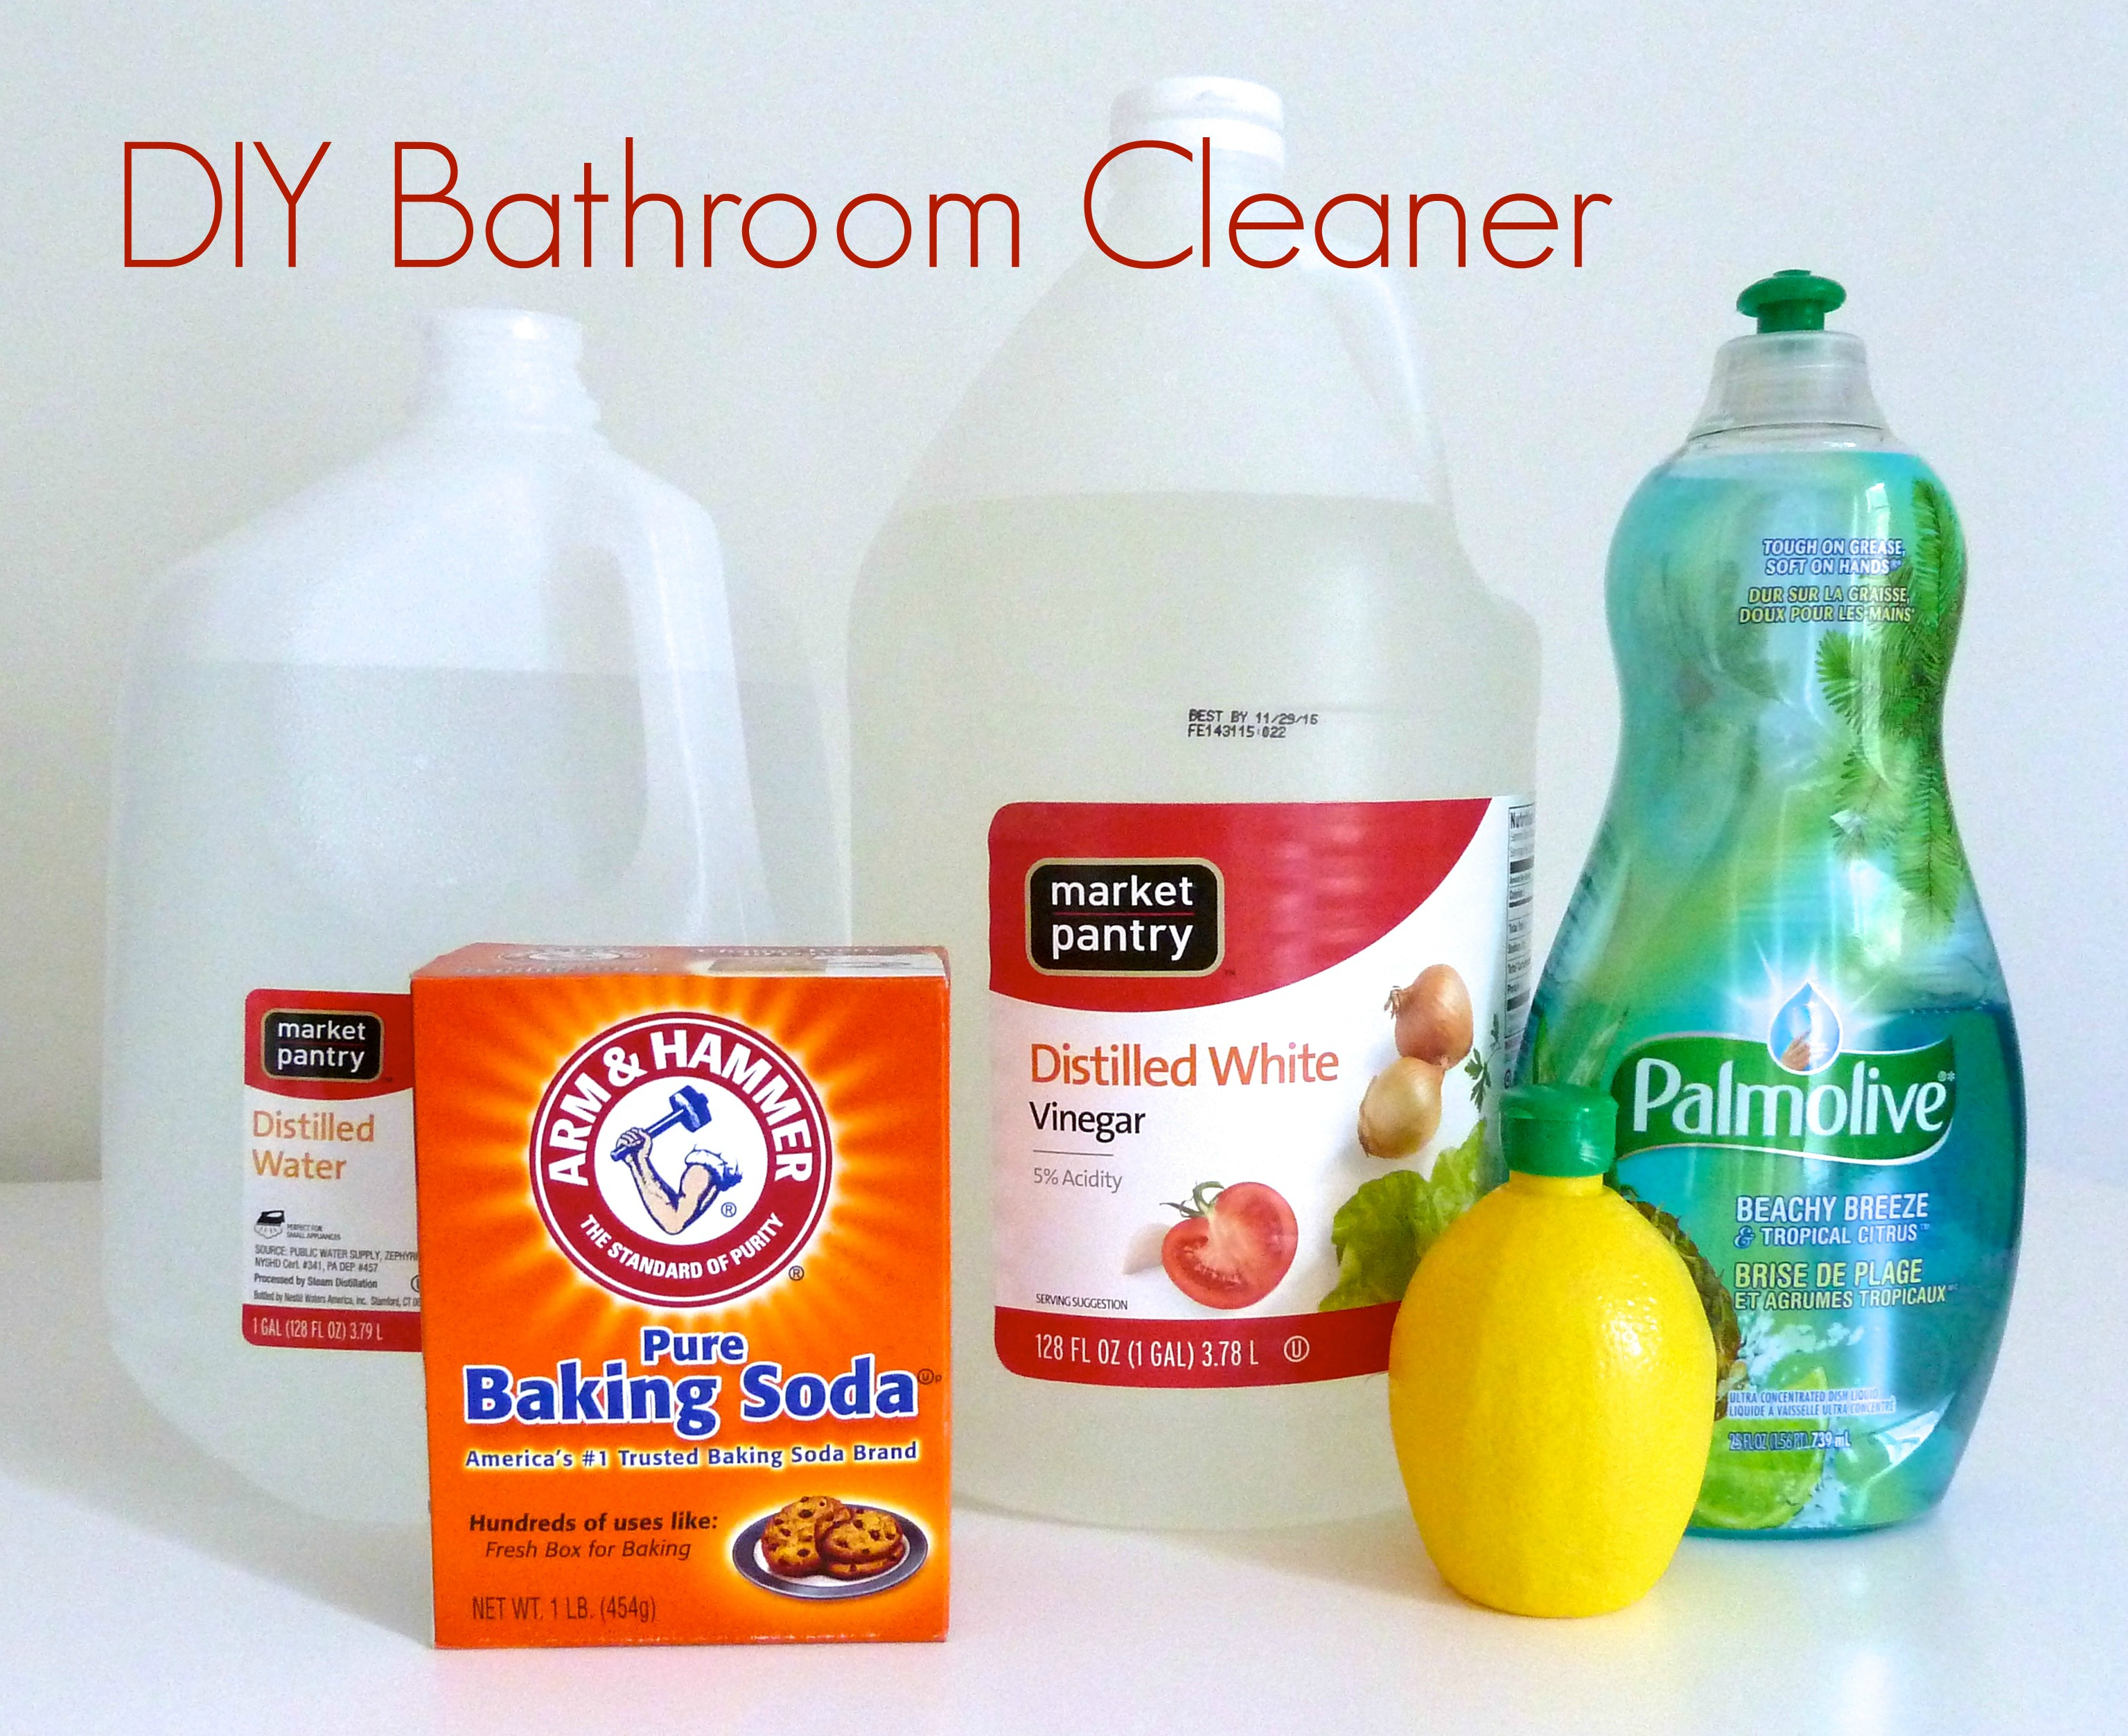 spray bottle homemade bathroom cleaner - Homemade Bathroom Cleaner